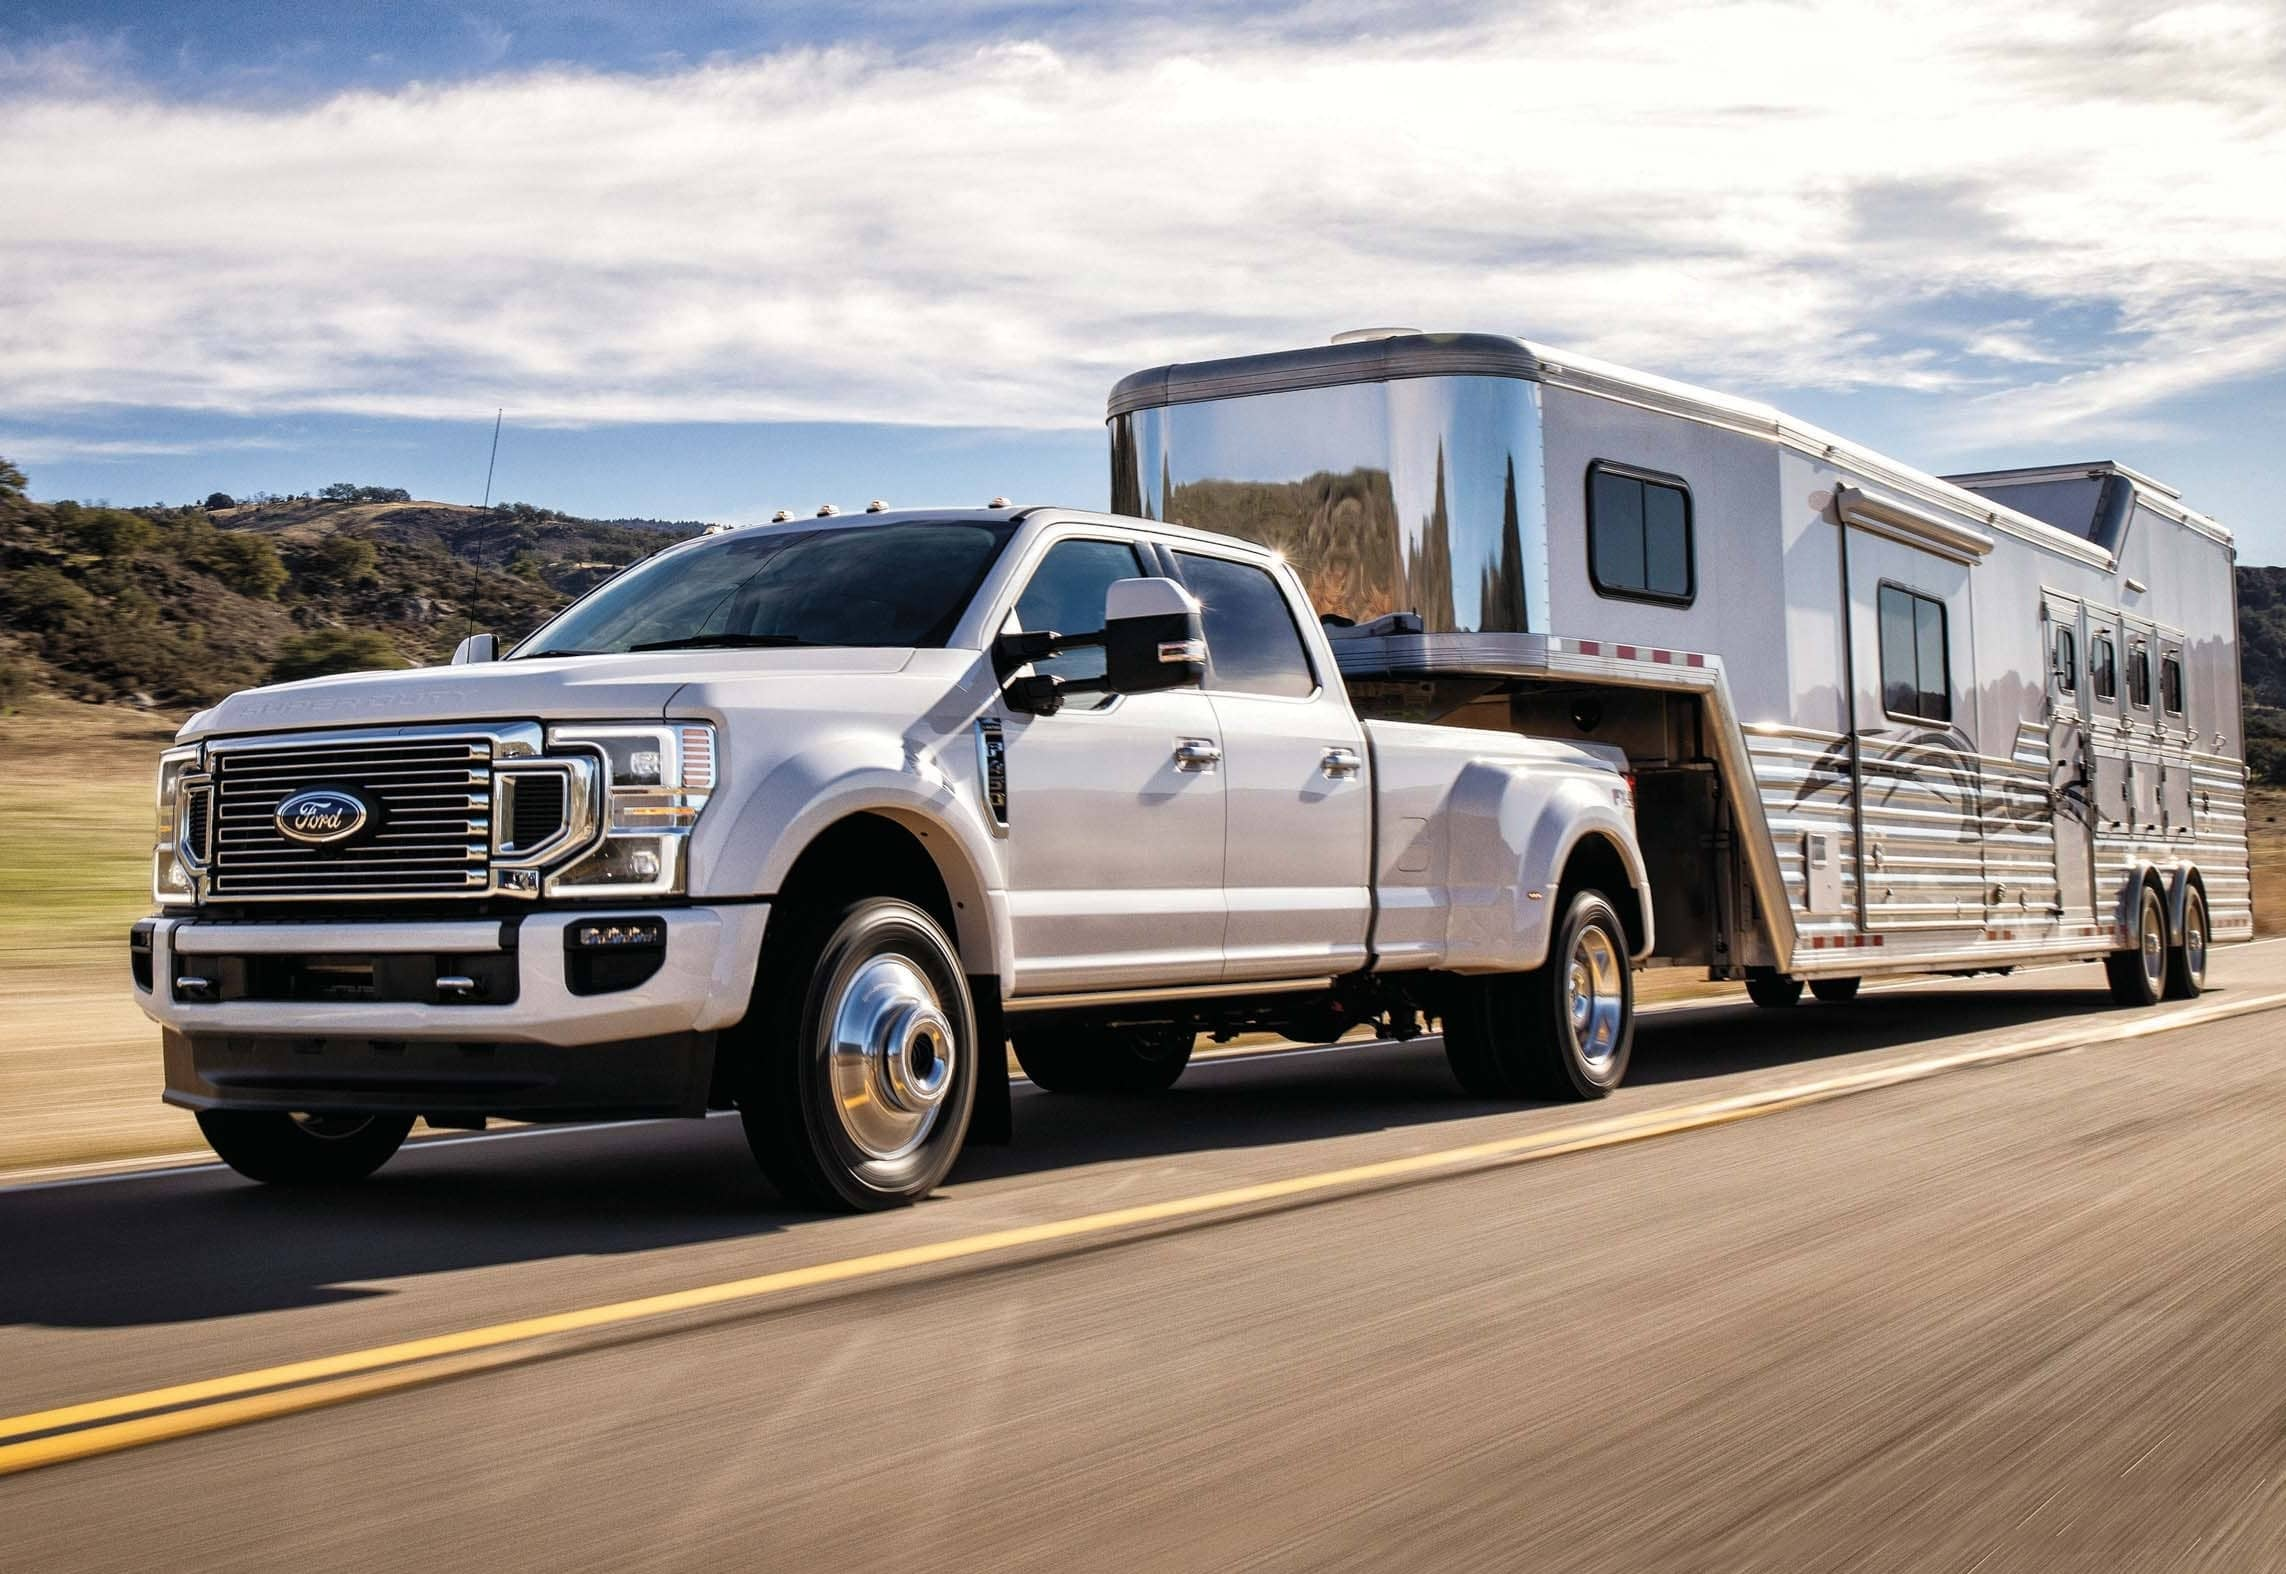 2020 Heavy-Duty Diesel Truck And Van Buyer's Guide